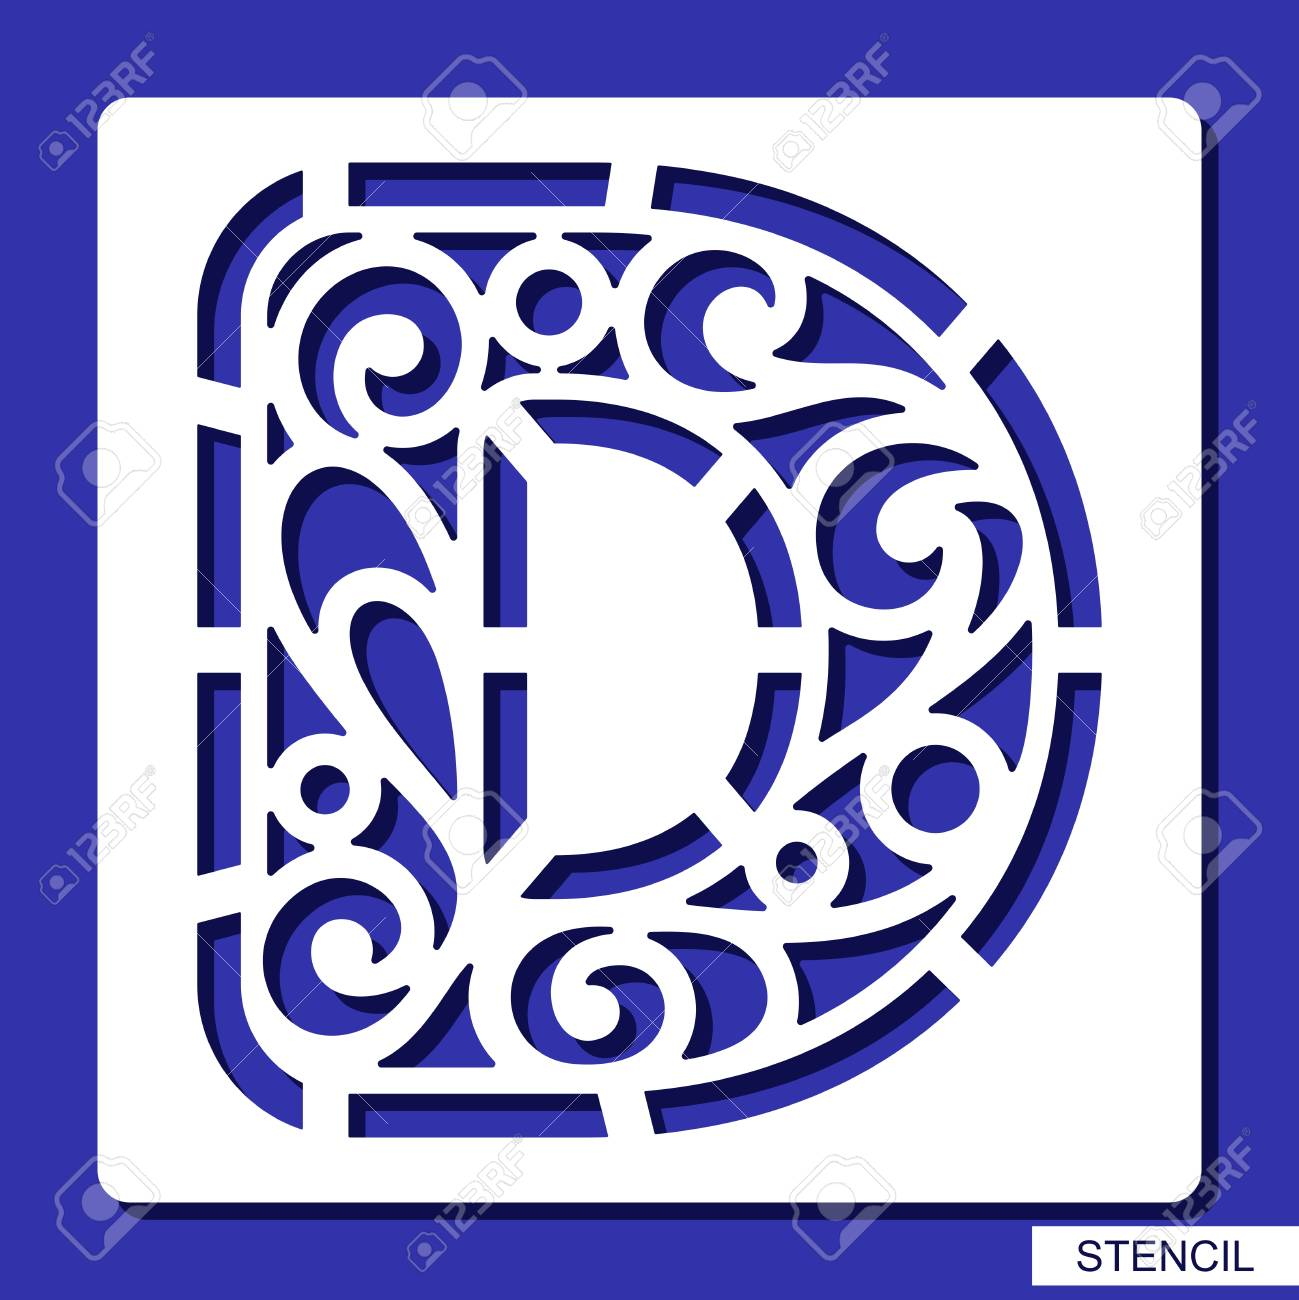 Stencil Alphabet Lacy Letter D Template For Laser Cutting